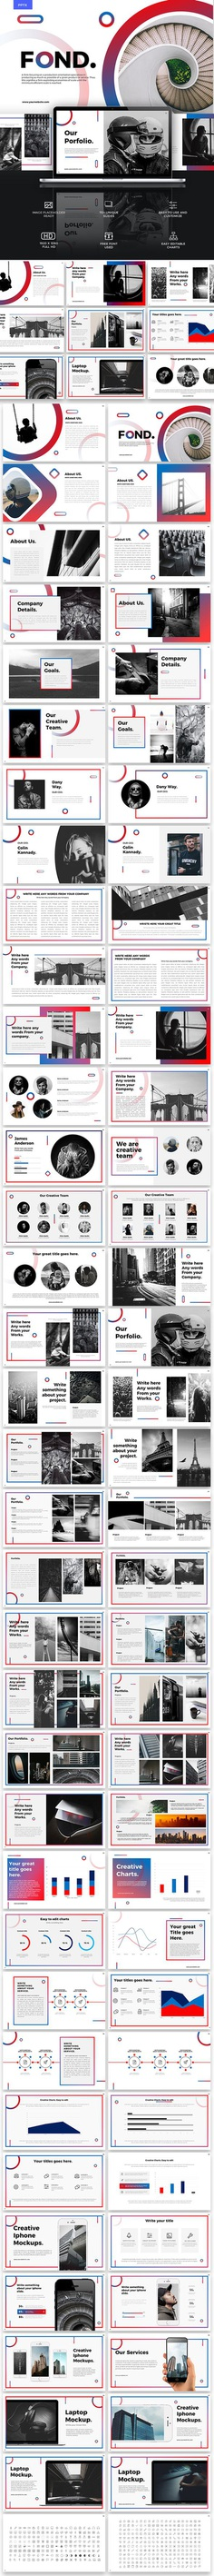 Fond Powerpoint Template - PowerPoint Templates Presentation Templates